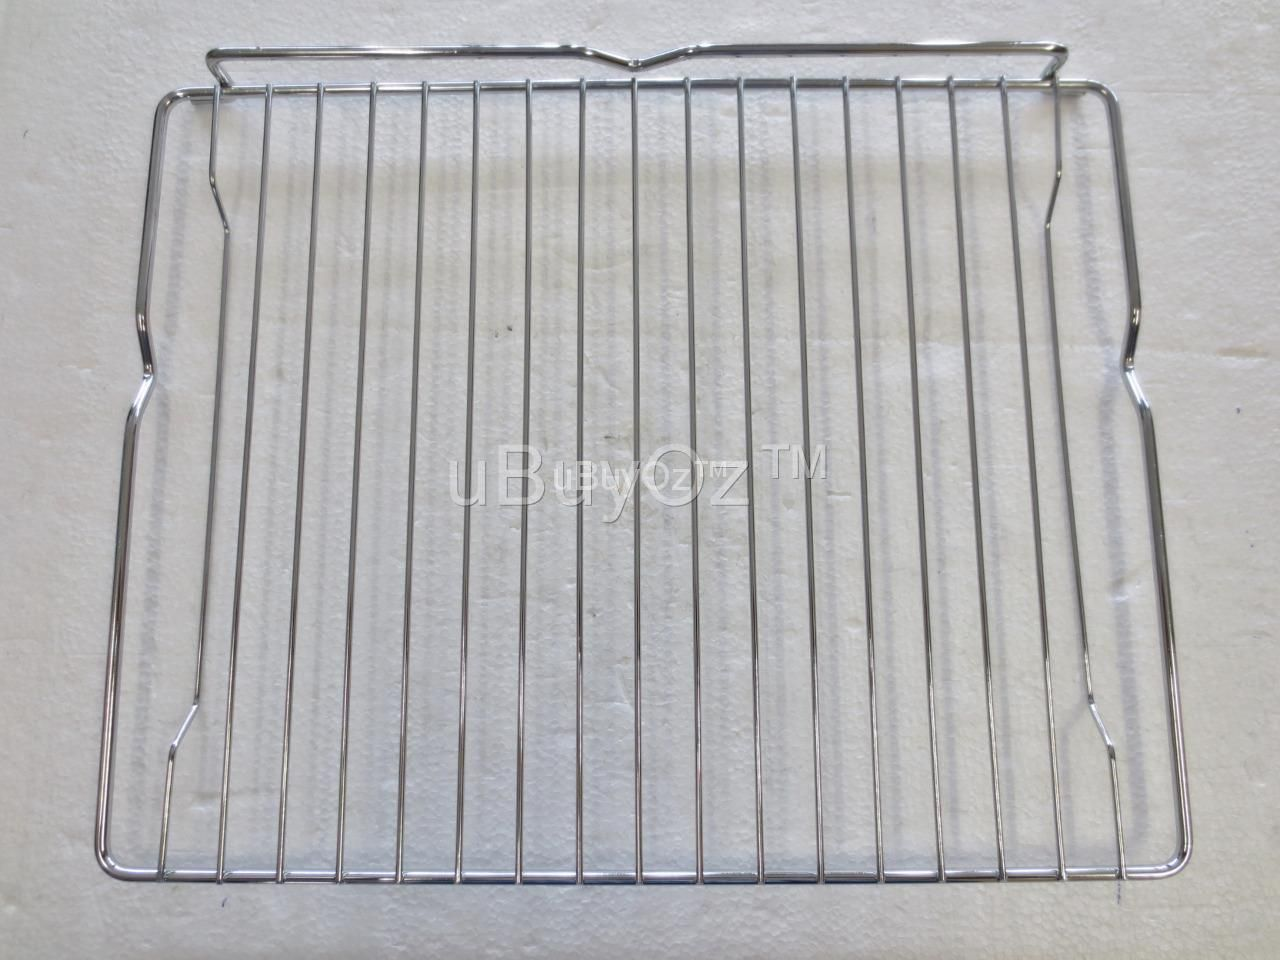 Blanco Oven Wire Rack Shelf Bso635 Bso629 425 X 350mm